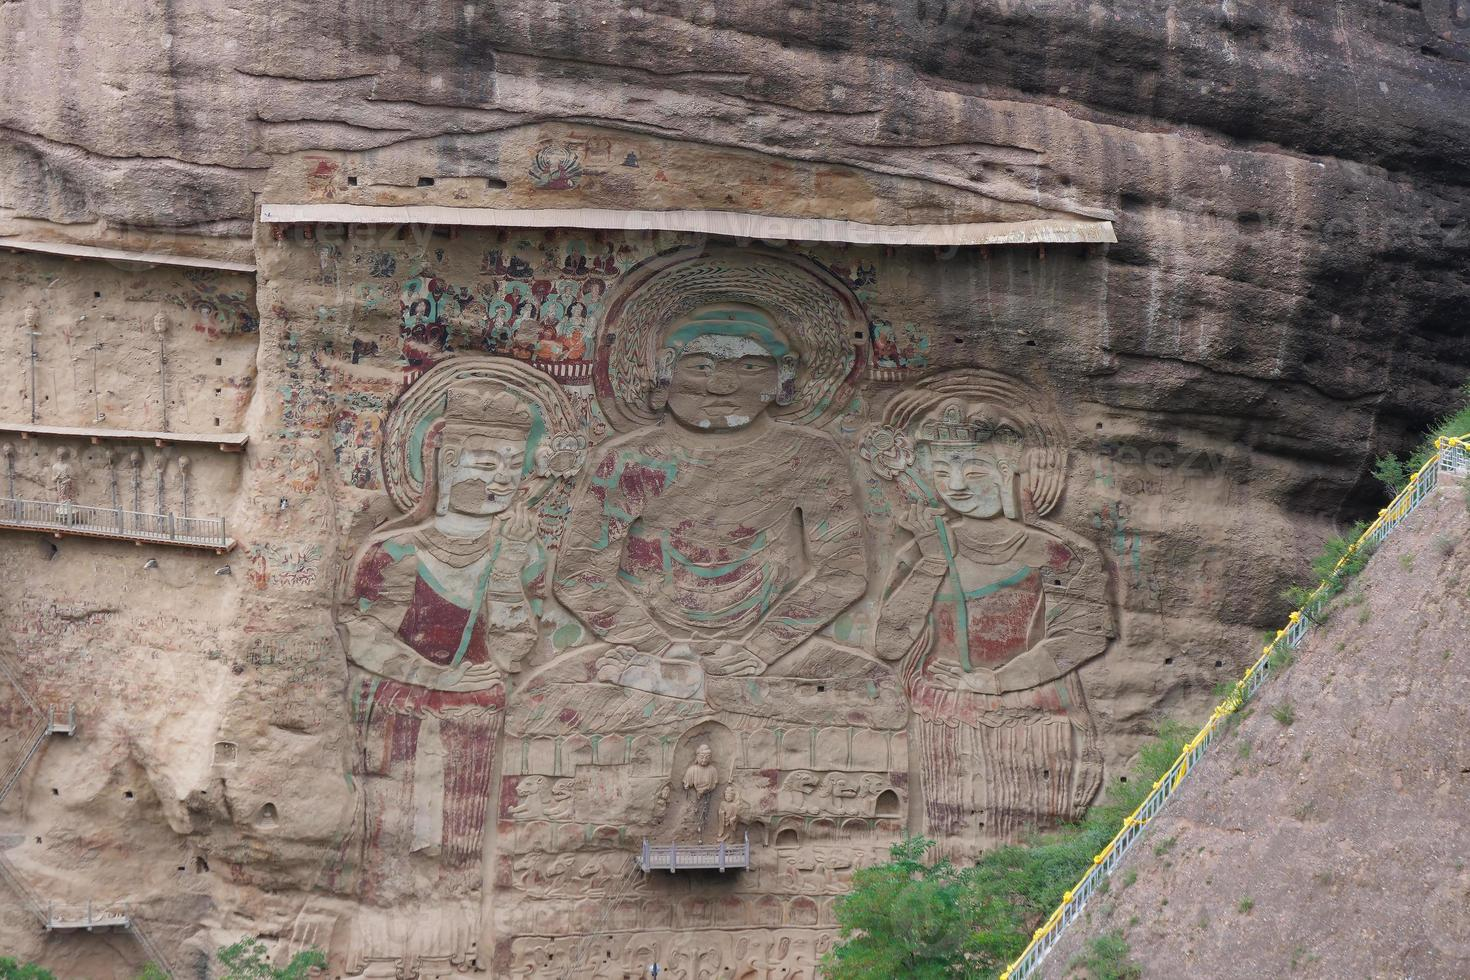 La Shao temple grotto relief painting in Tianshui Wushan China photo